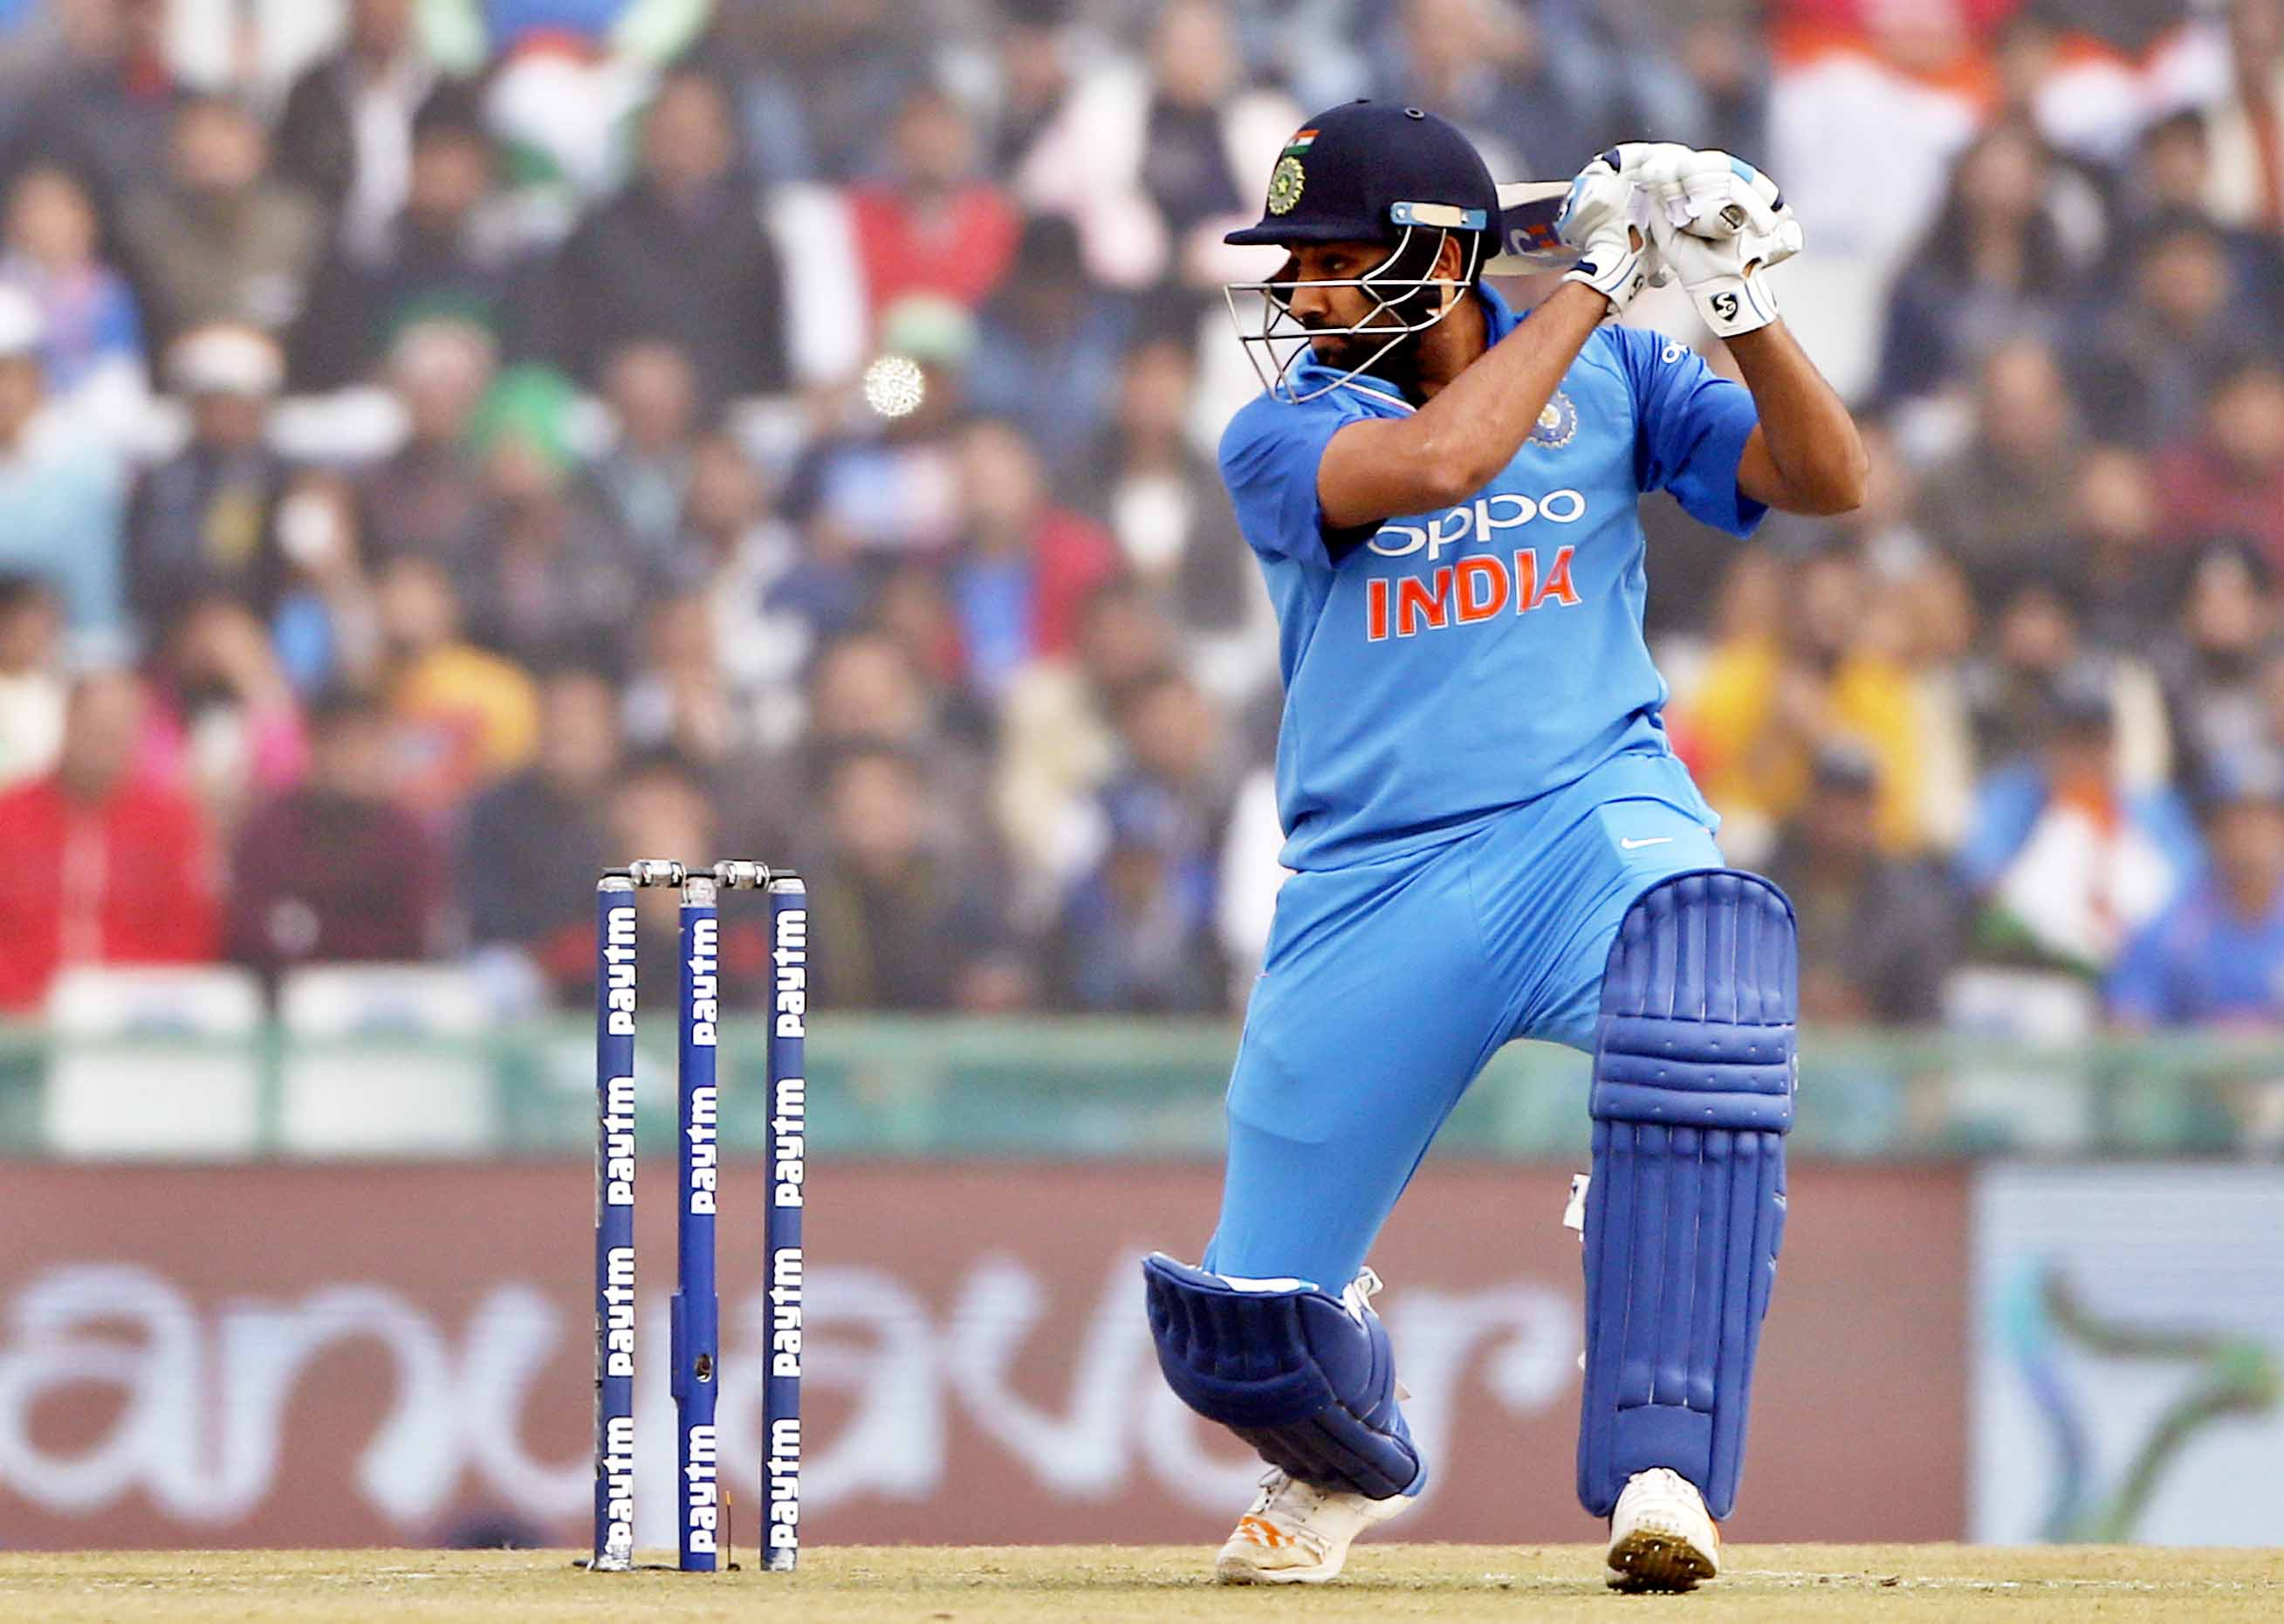 India's captain Rohit Sharma watches his shot during their second One Day International cricket match against Sri Lanka in Mohali, India on Wednesday. India won the match by 141 runs.